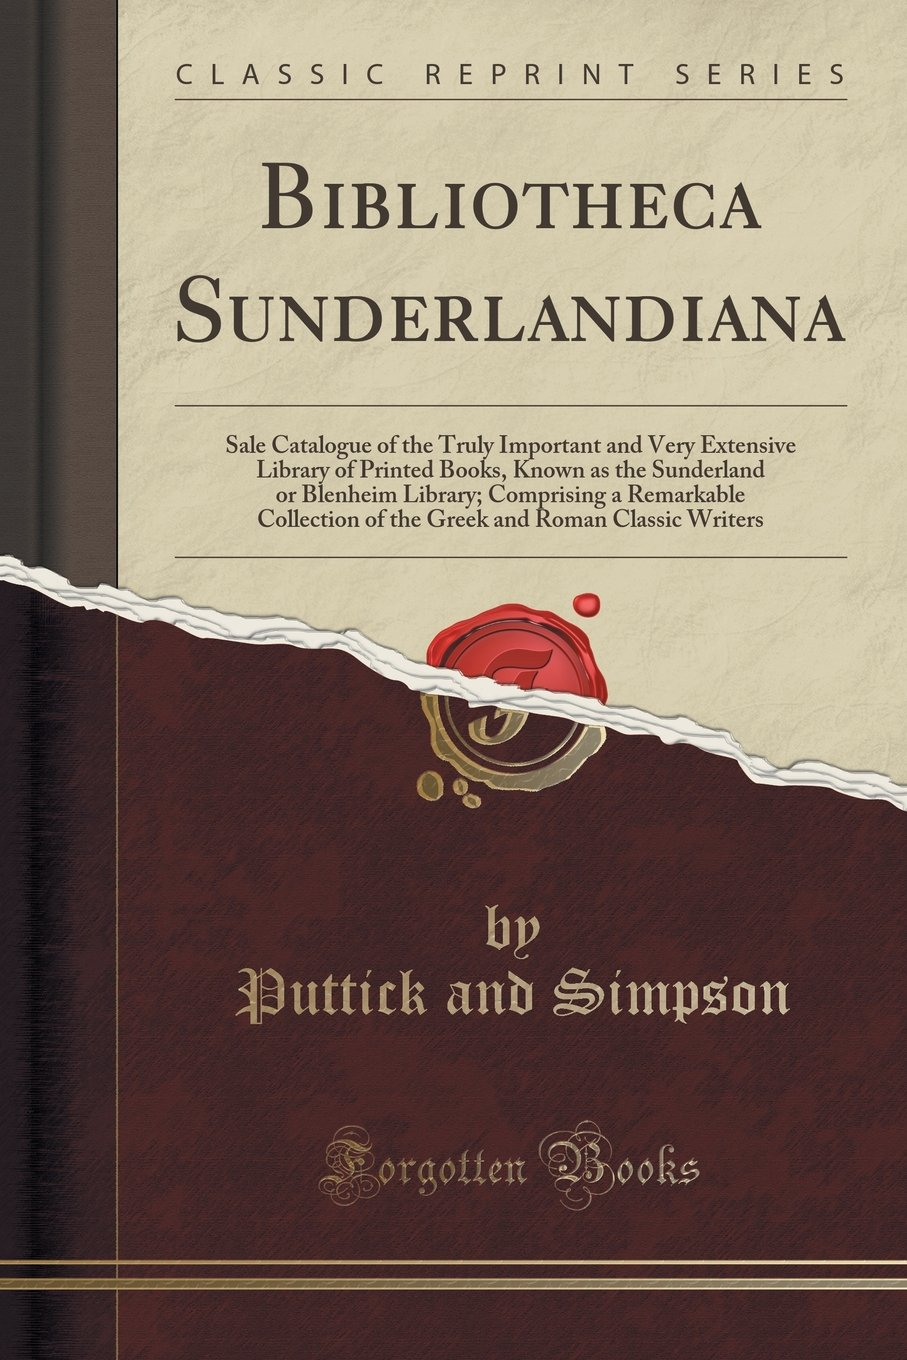 Download Bibliotheca Sunderlandiana: Sale Catalogue of the Truly Important and Very Extensive Library of Printed Books, Known as the Sunderland or Blenheim ... and Roman Classic Writers (Classic Reprint) ebook